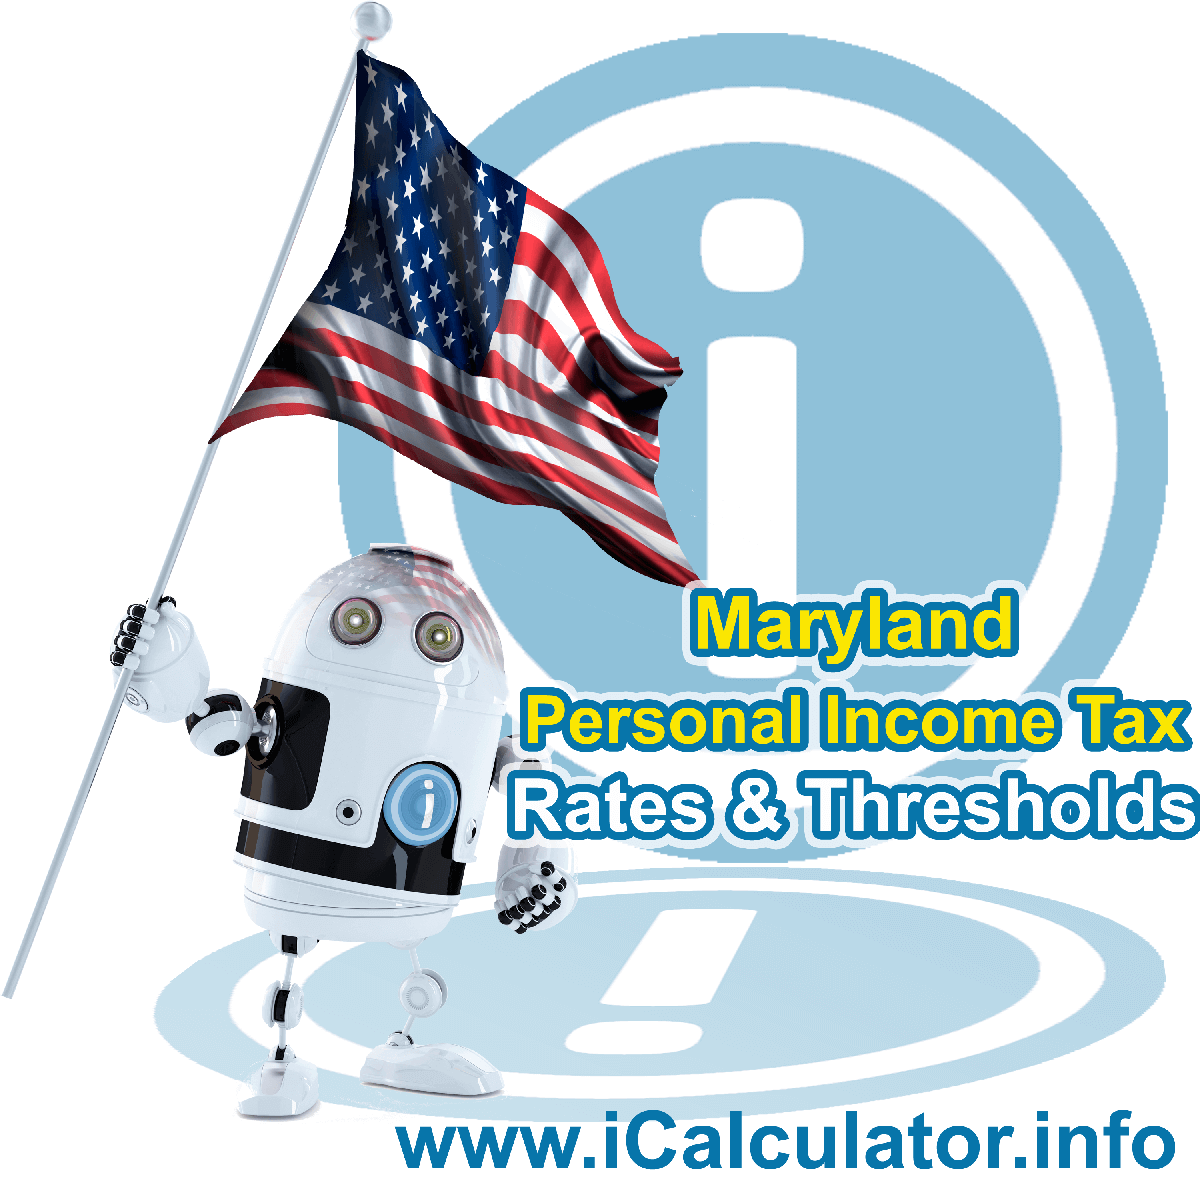 Maryland State Tax Tables 2017. This image displays details of the Maryland State Tax Tables for the 2017 tax return year which is provided in support of the 2017 US Tax Calculator